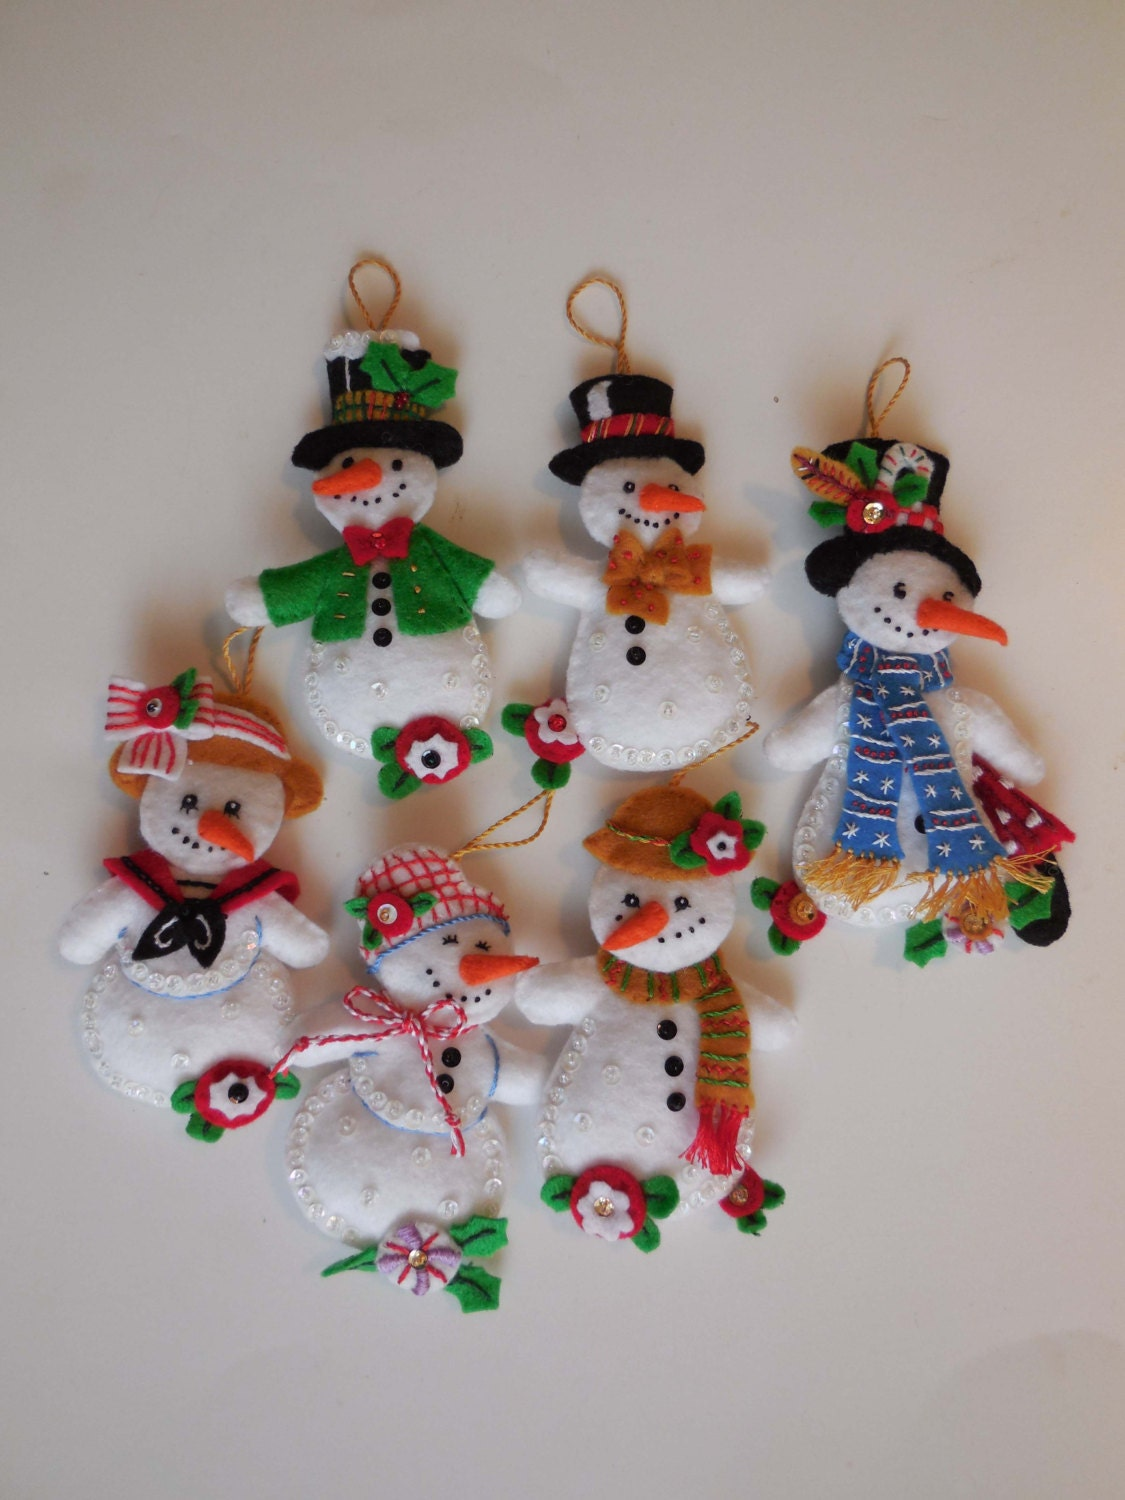 Finished christmas ornaments let it snowman sale for Christmas ornaments sale